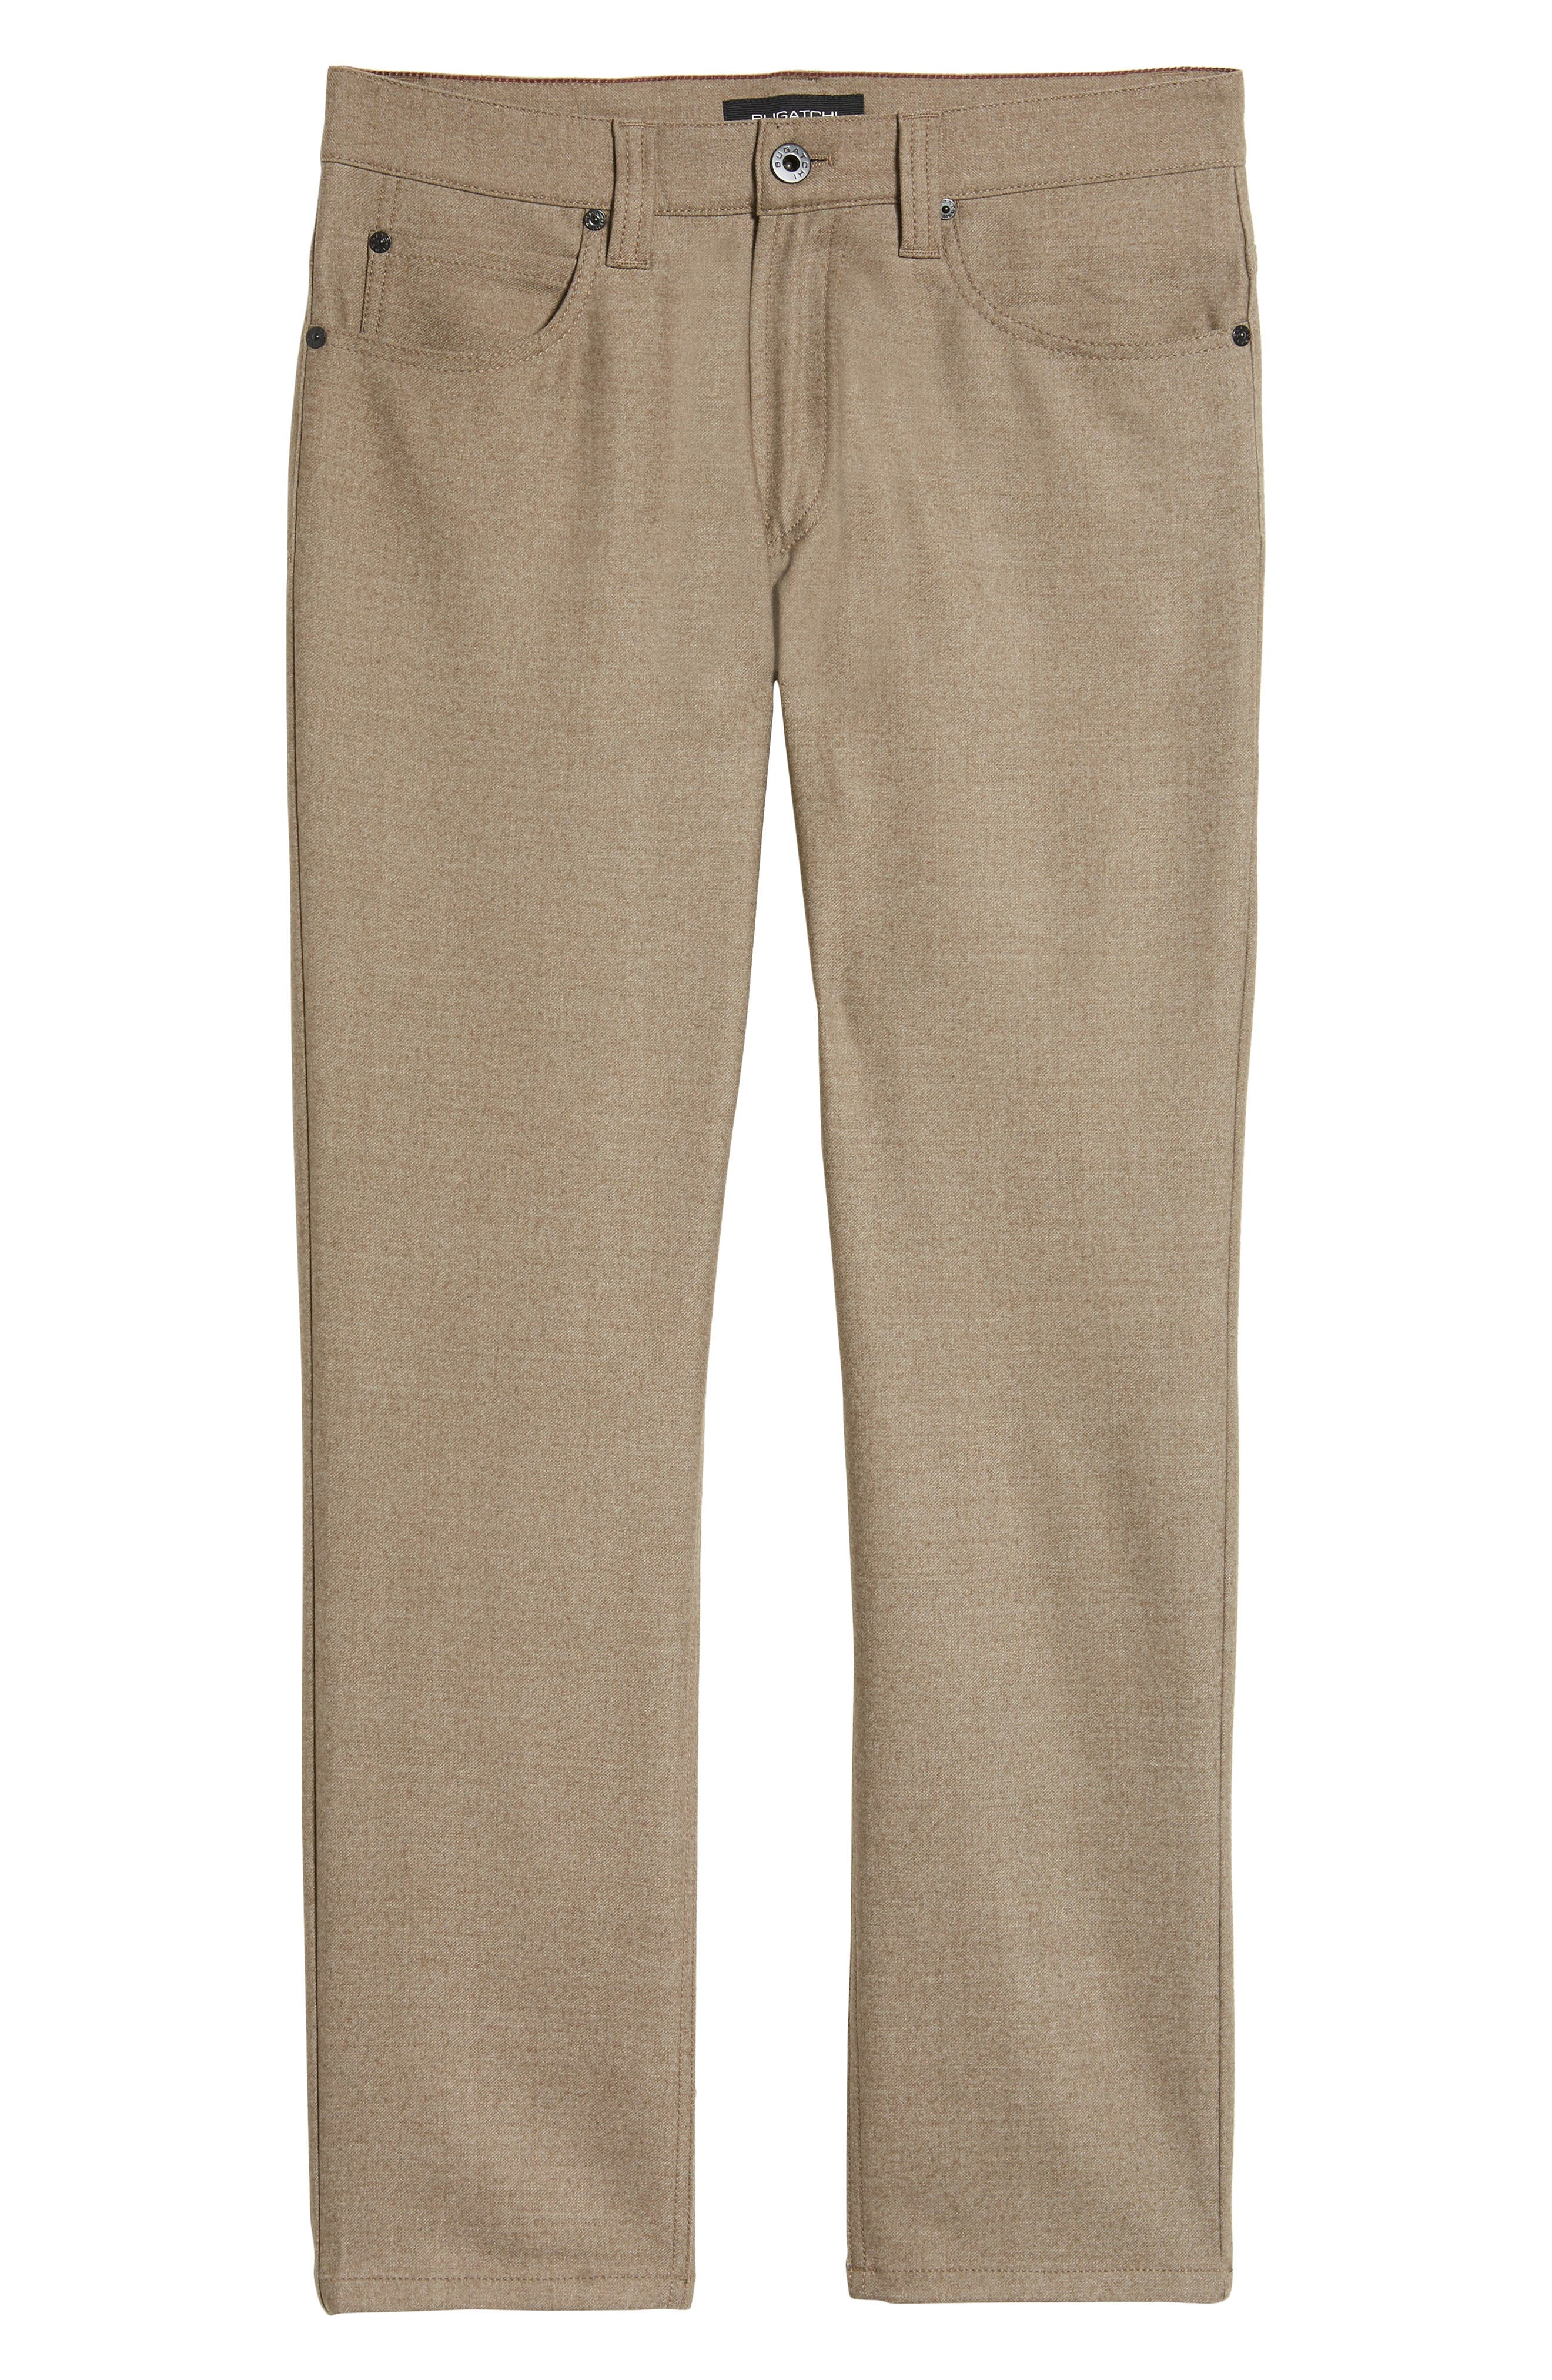 Wool Blend Pants,                             Alternate thumbnail 6, color,                             208